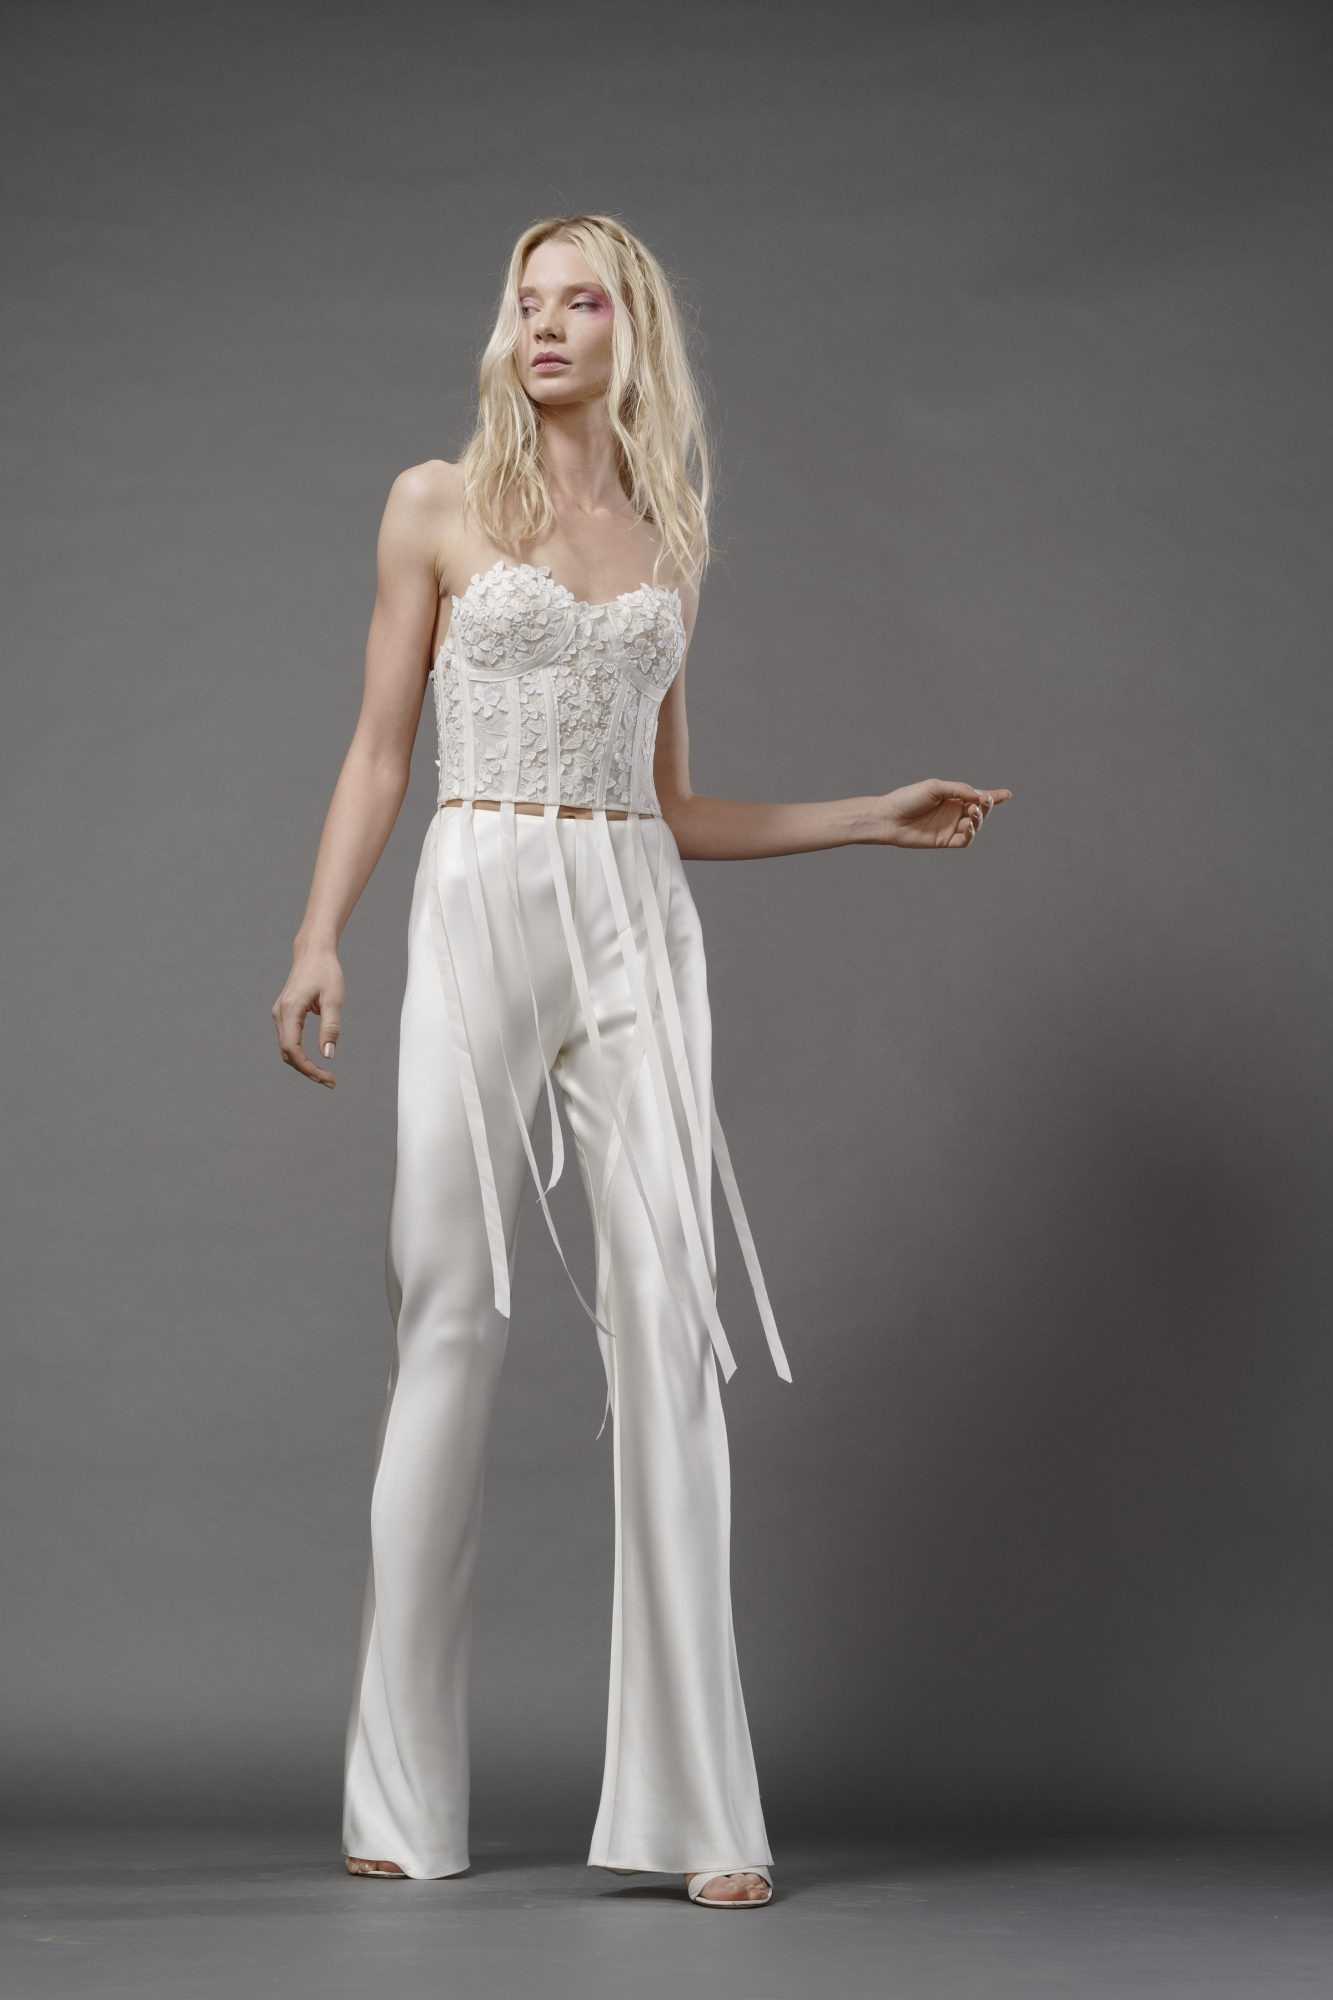 elizabeth fillmore fall 2019 flair pants sweetheart strapless exposed boning lace bodice separates